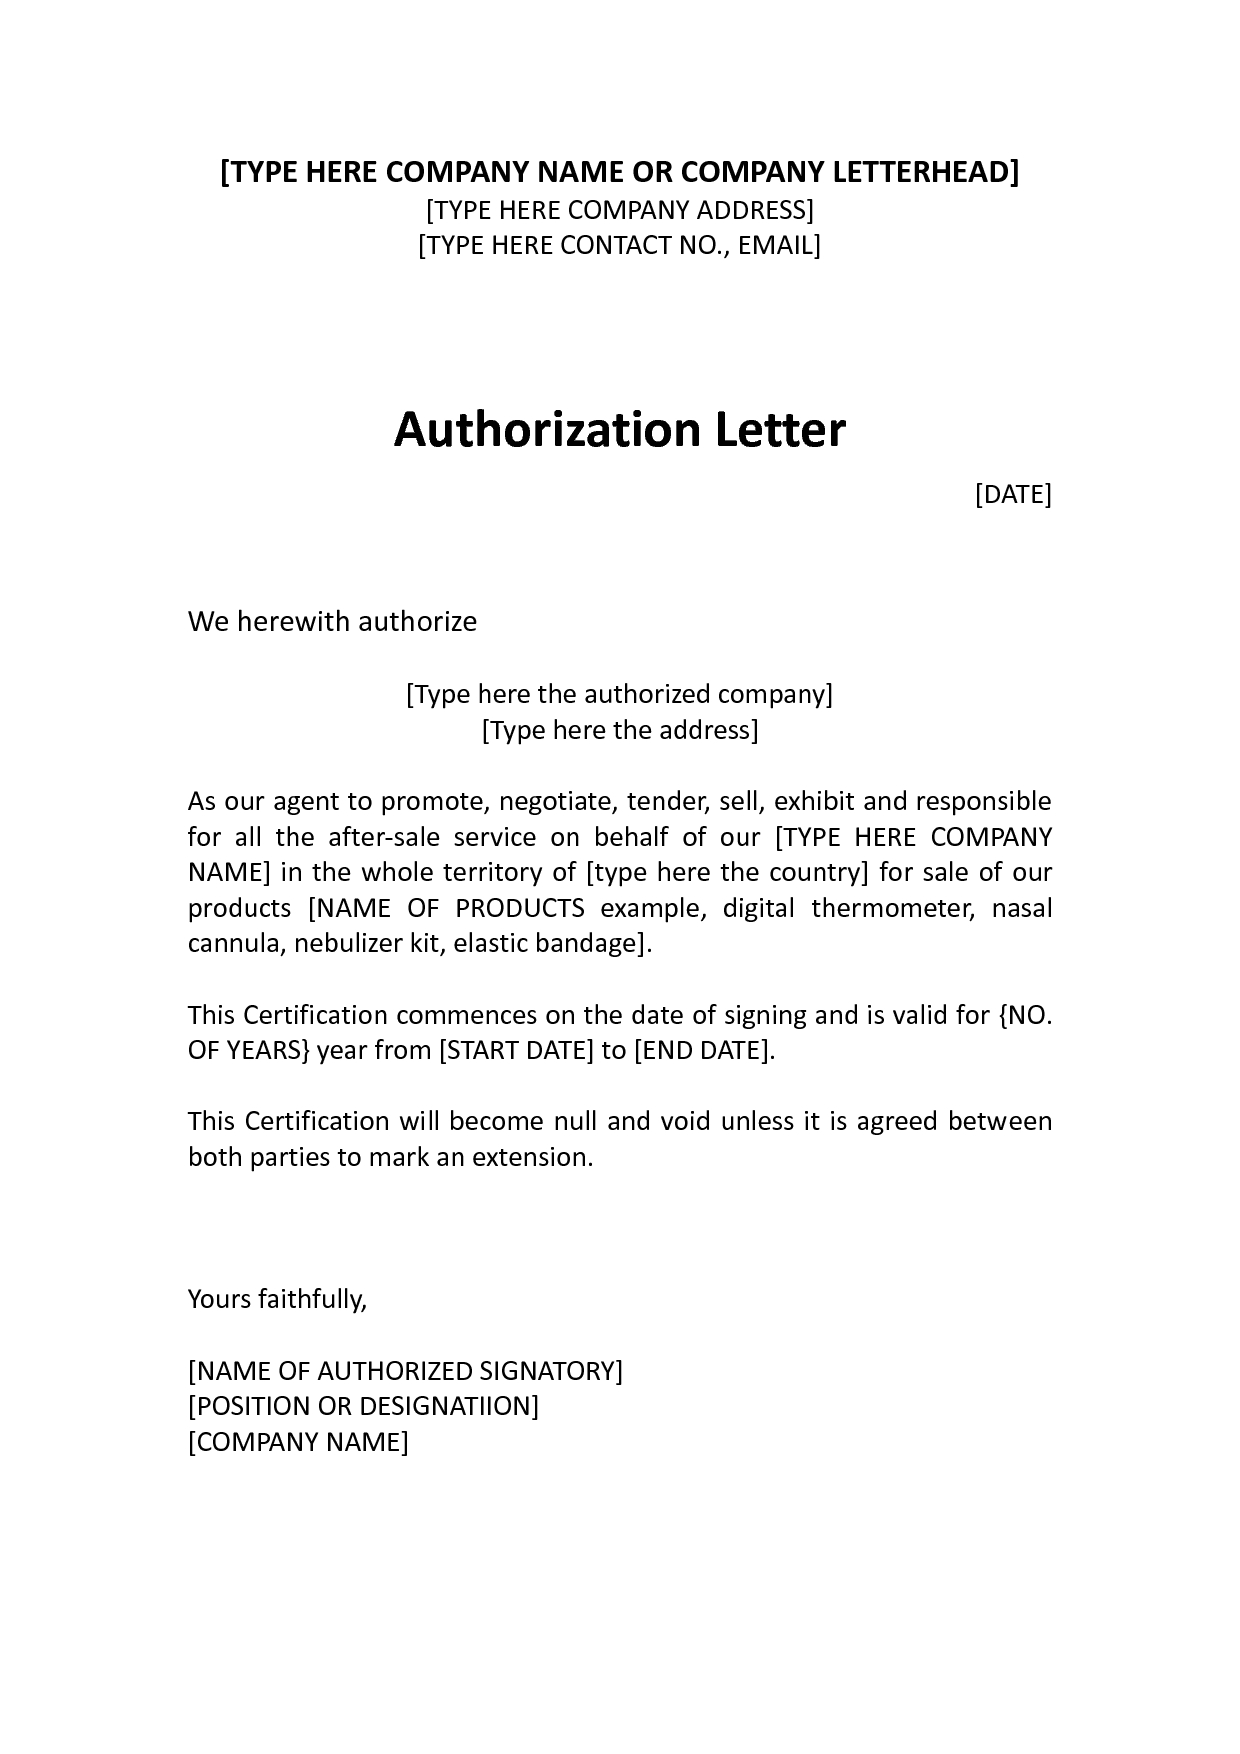 Sample Proof Of Funds Letter Template - Authorization Distributor Letter Sample Distributor Dealer